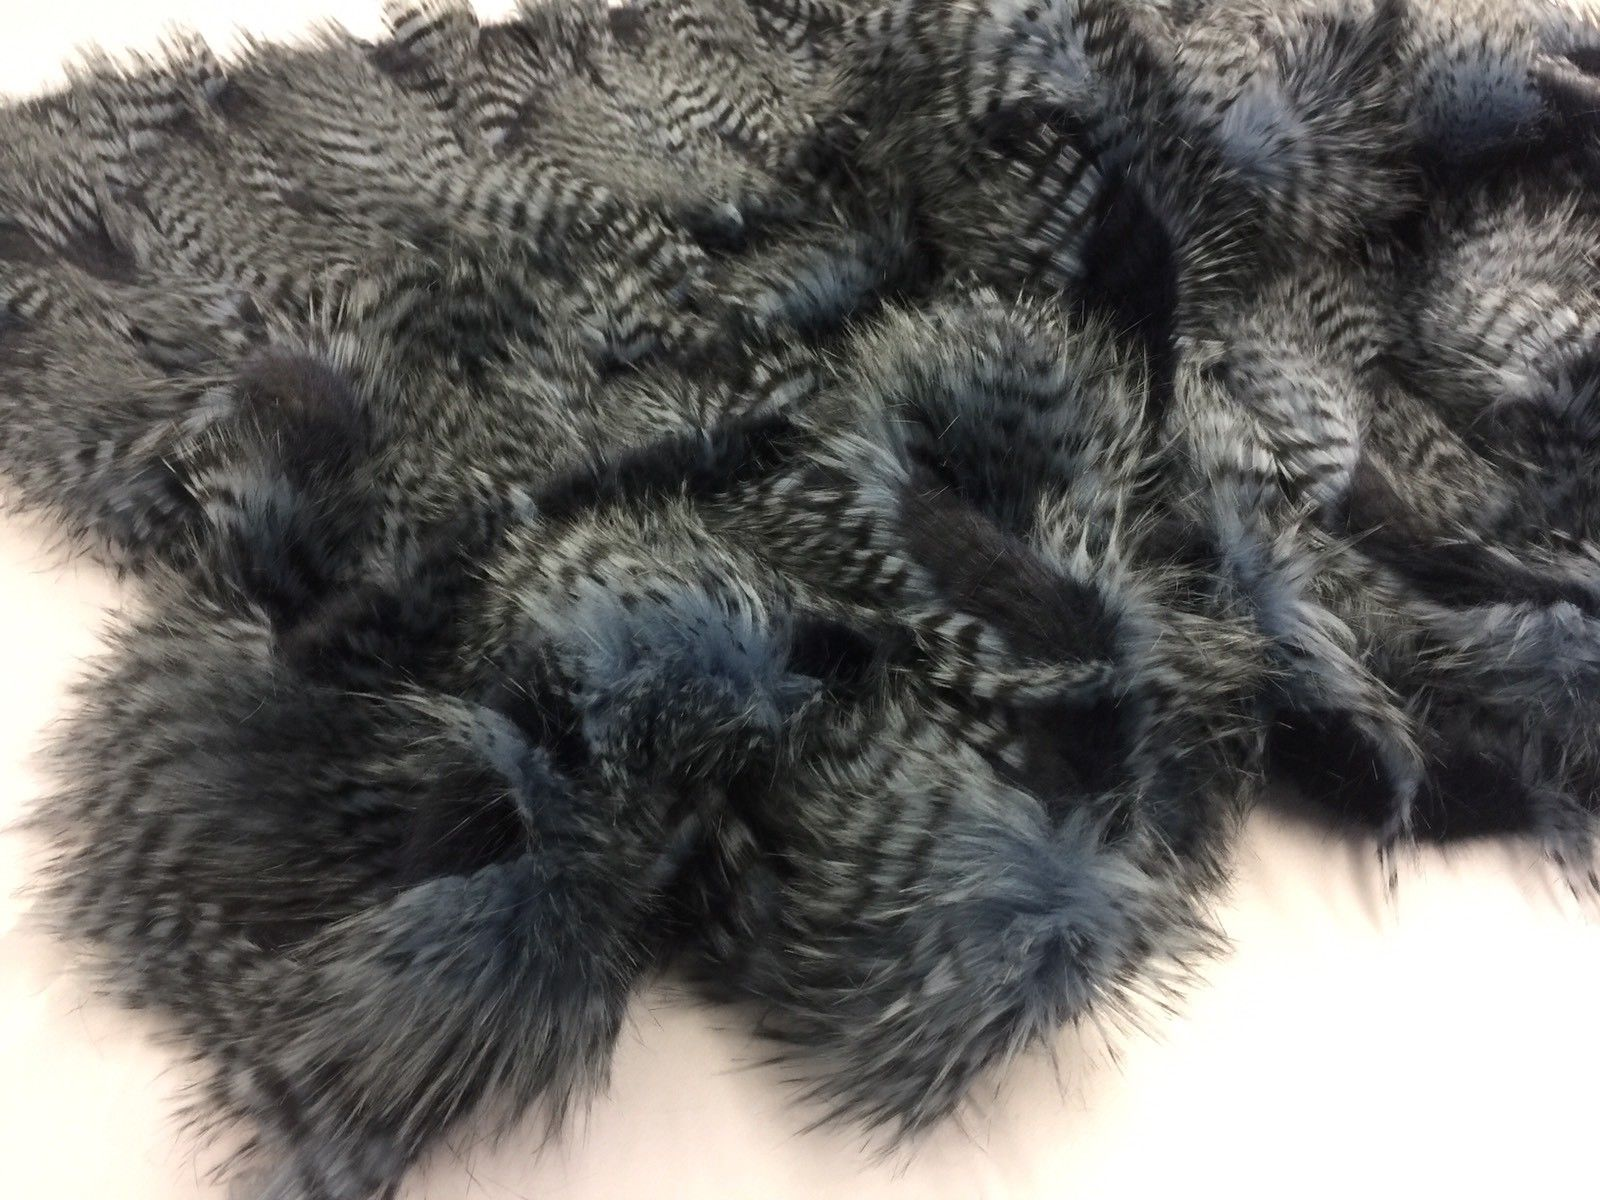 "FAUX FAKE FUR FEATHERED BIRD LONG PILE FABRIC - Navy - 62"" WIDE BY THE YARD COAT - KINGDOM OF FABRICS"